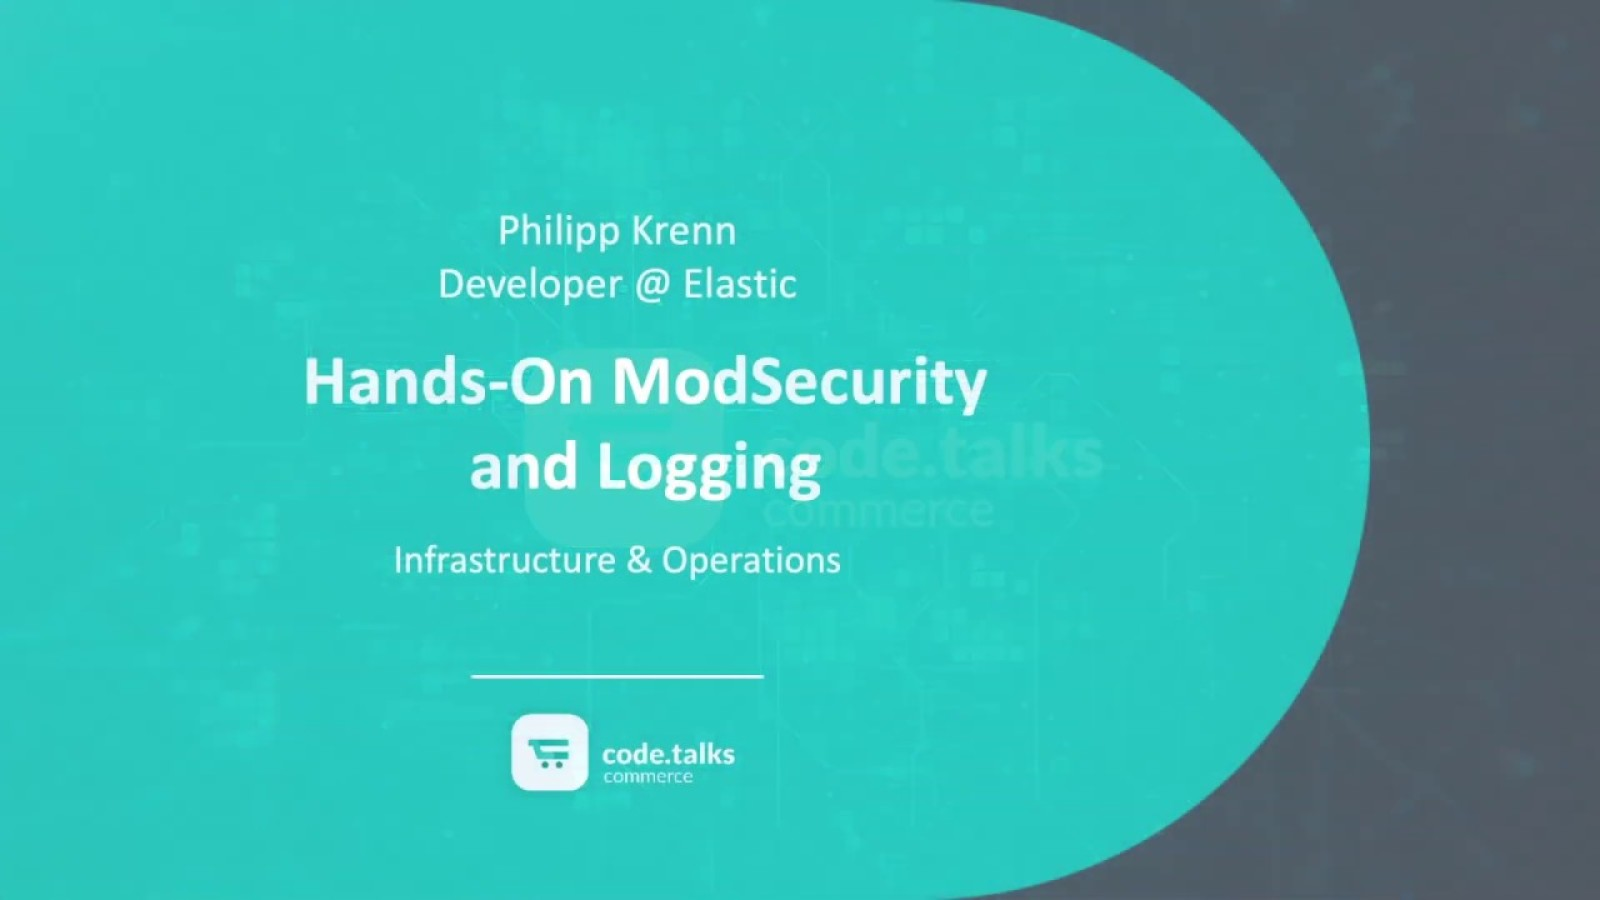 Hands-On ModSecurity and Logging